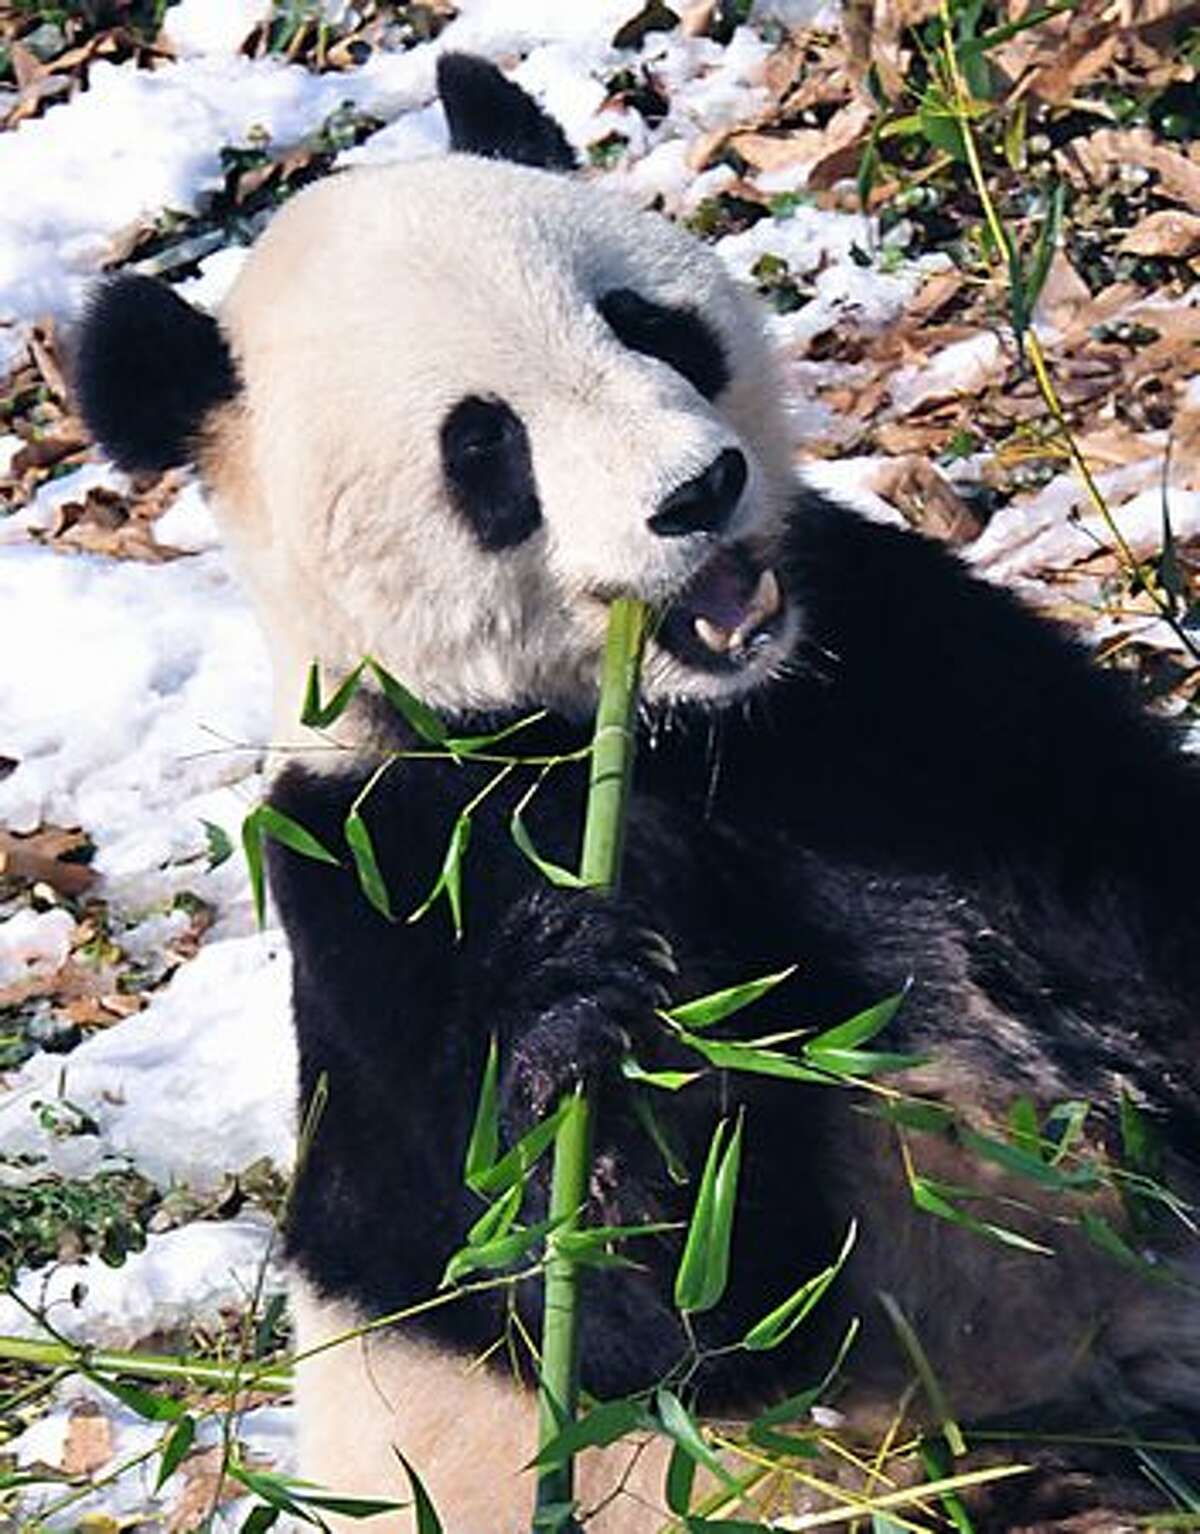 Tai Shan, one of the Smithsonian Zoo's Giant Pandas chews on bamboo on Feb. 3, 2010 in his habitat. (KAREN BLEIER/AFP/Getty Images)